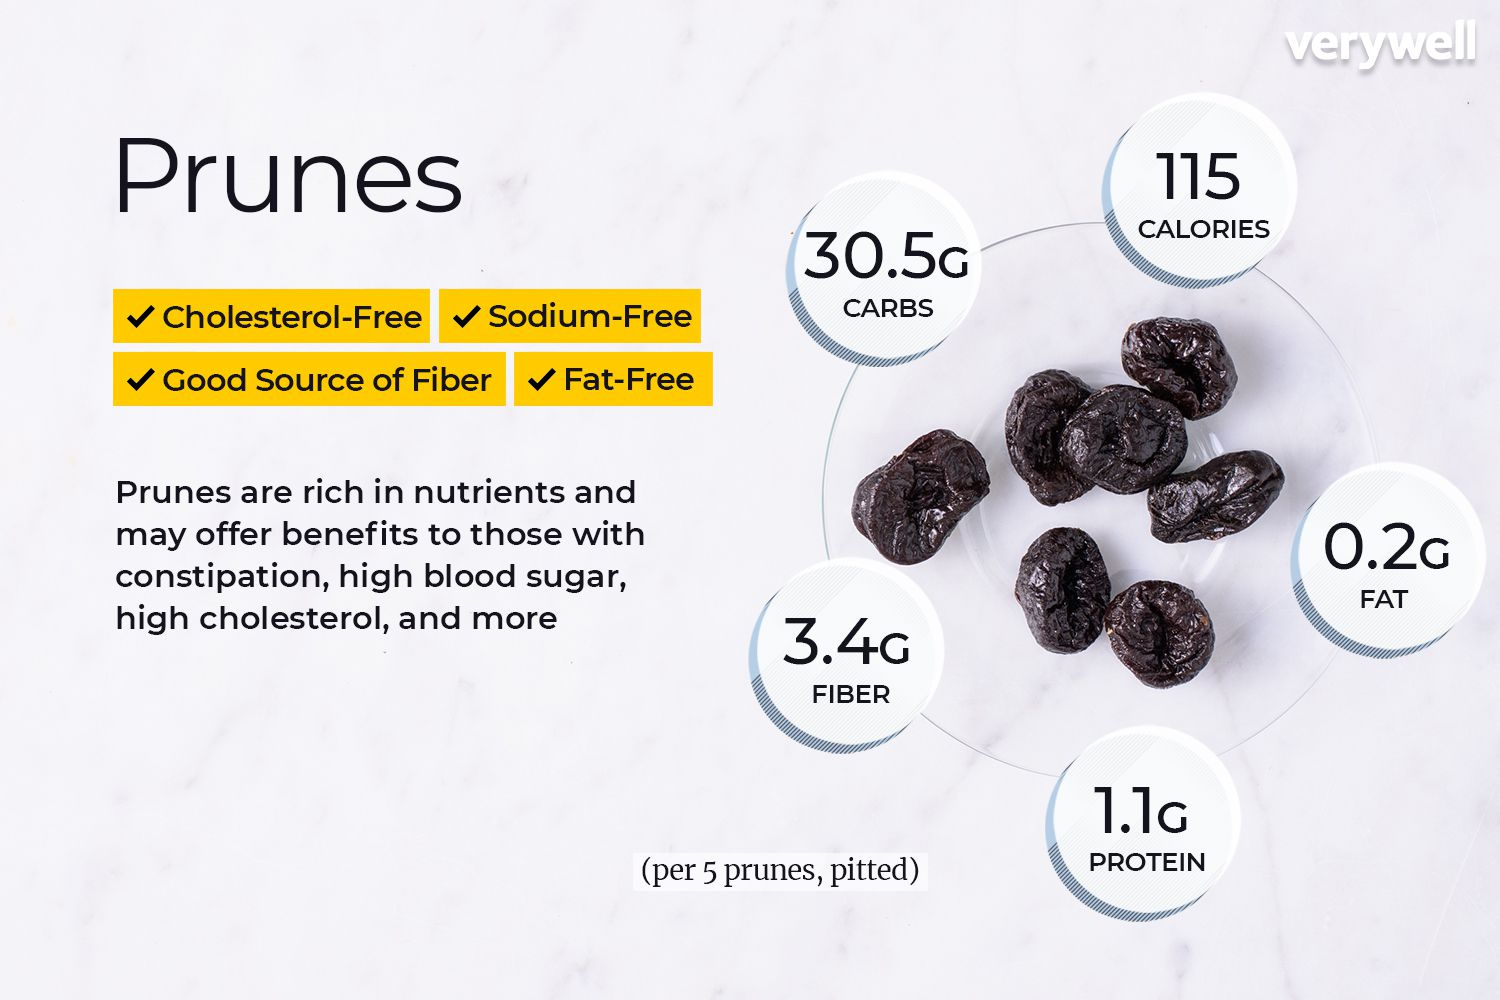 Prunes: Calories, Carbs, and Health Benefits